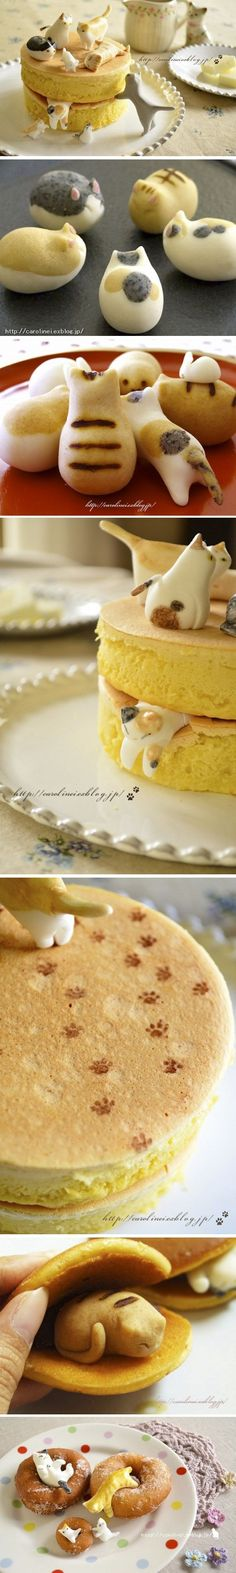 hotcakes loaded with...